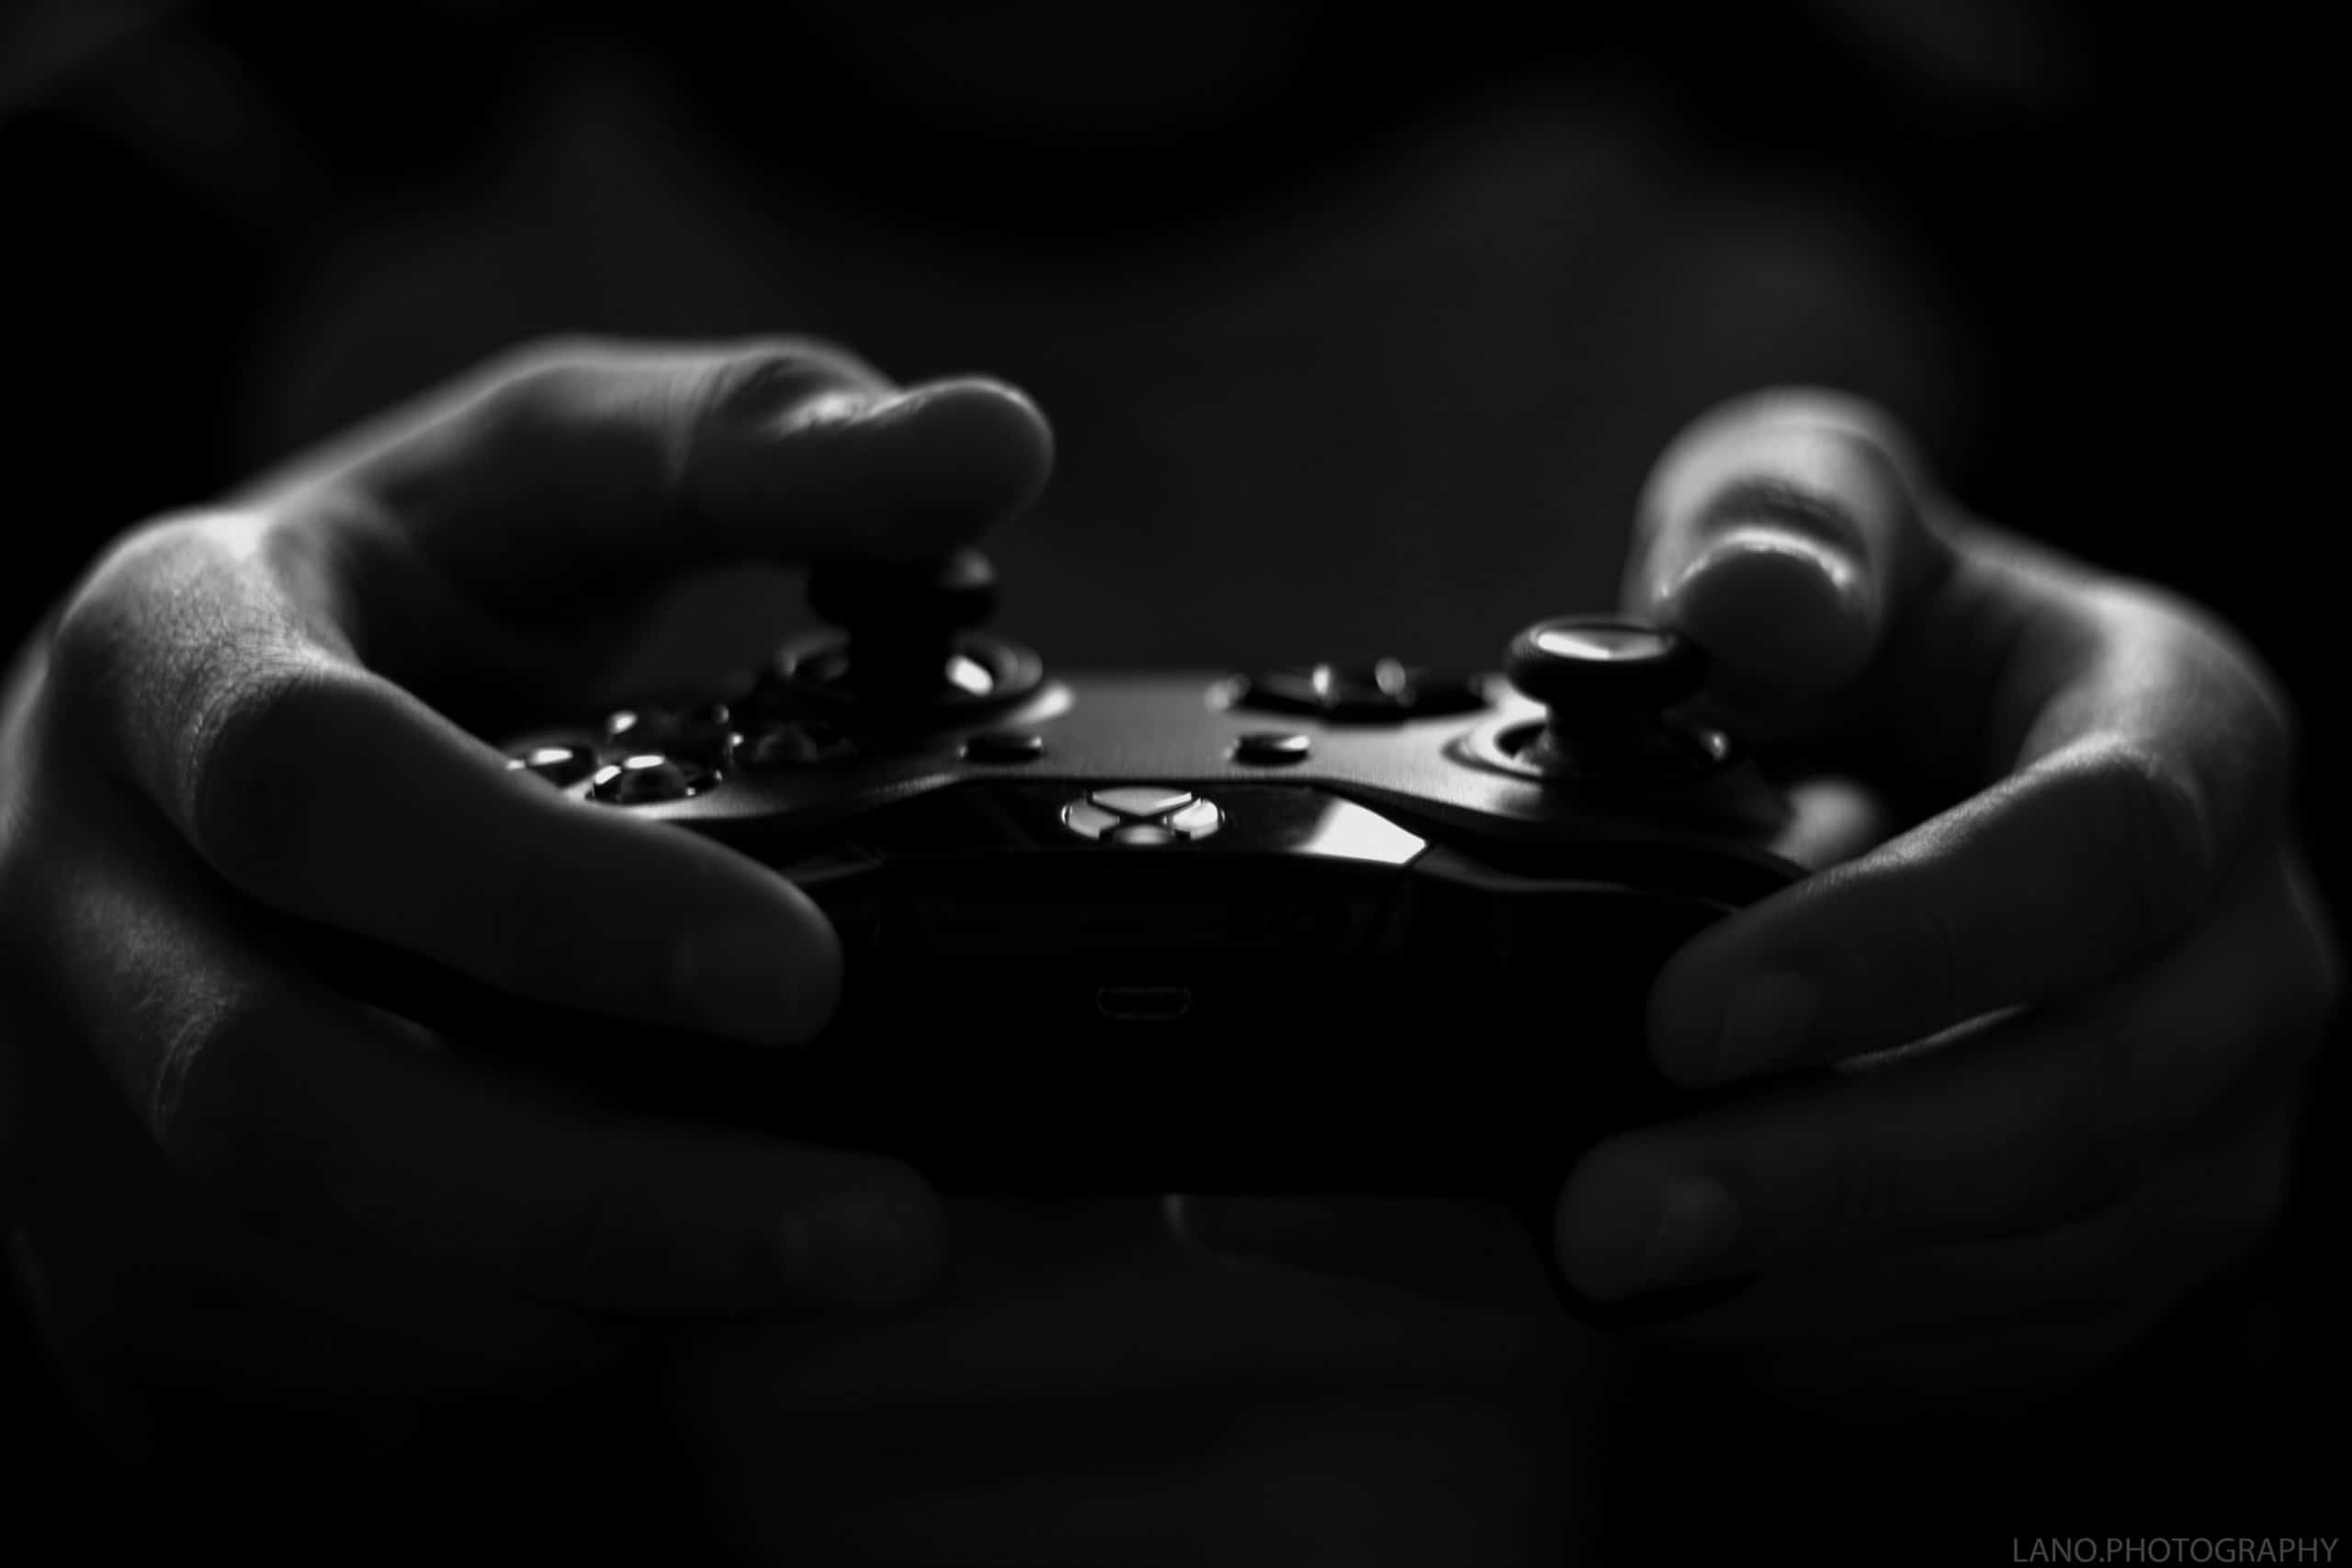 How To Know If You Are Addicted To Videogames